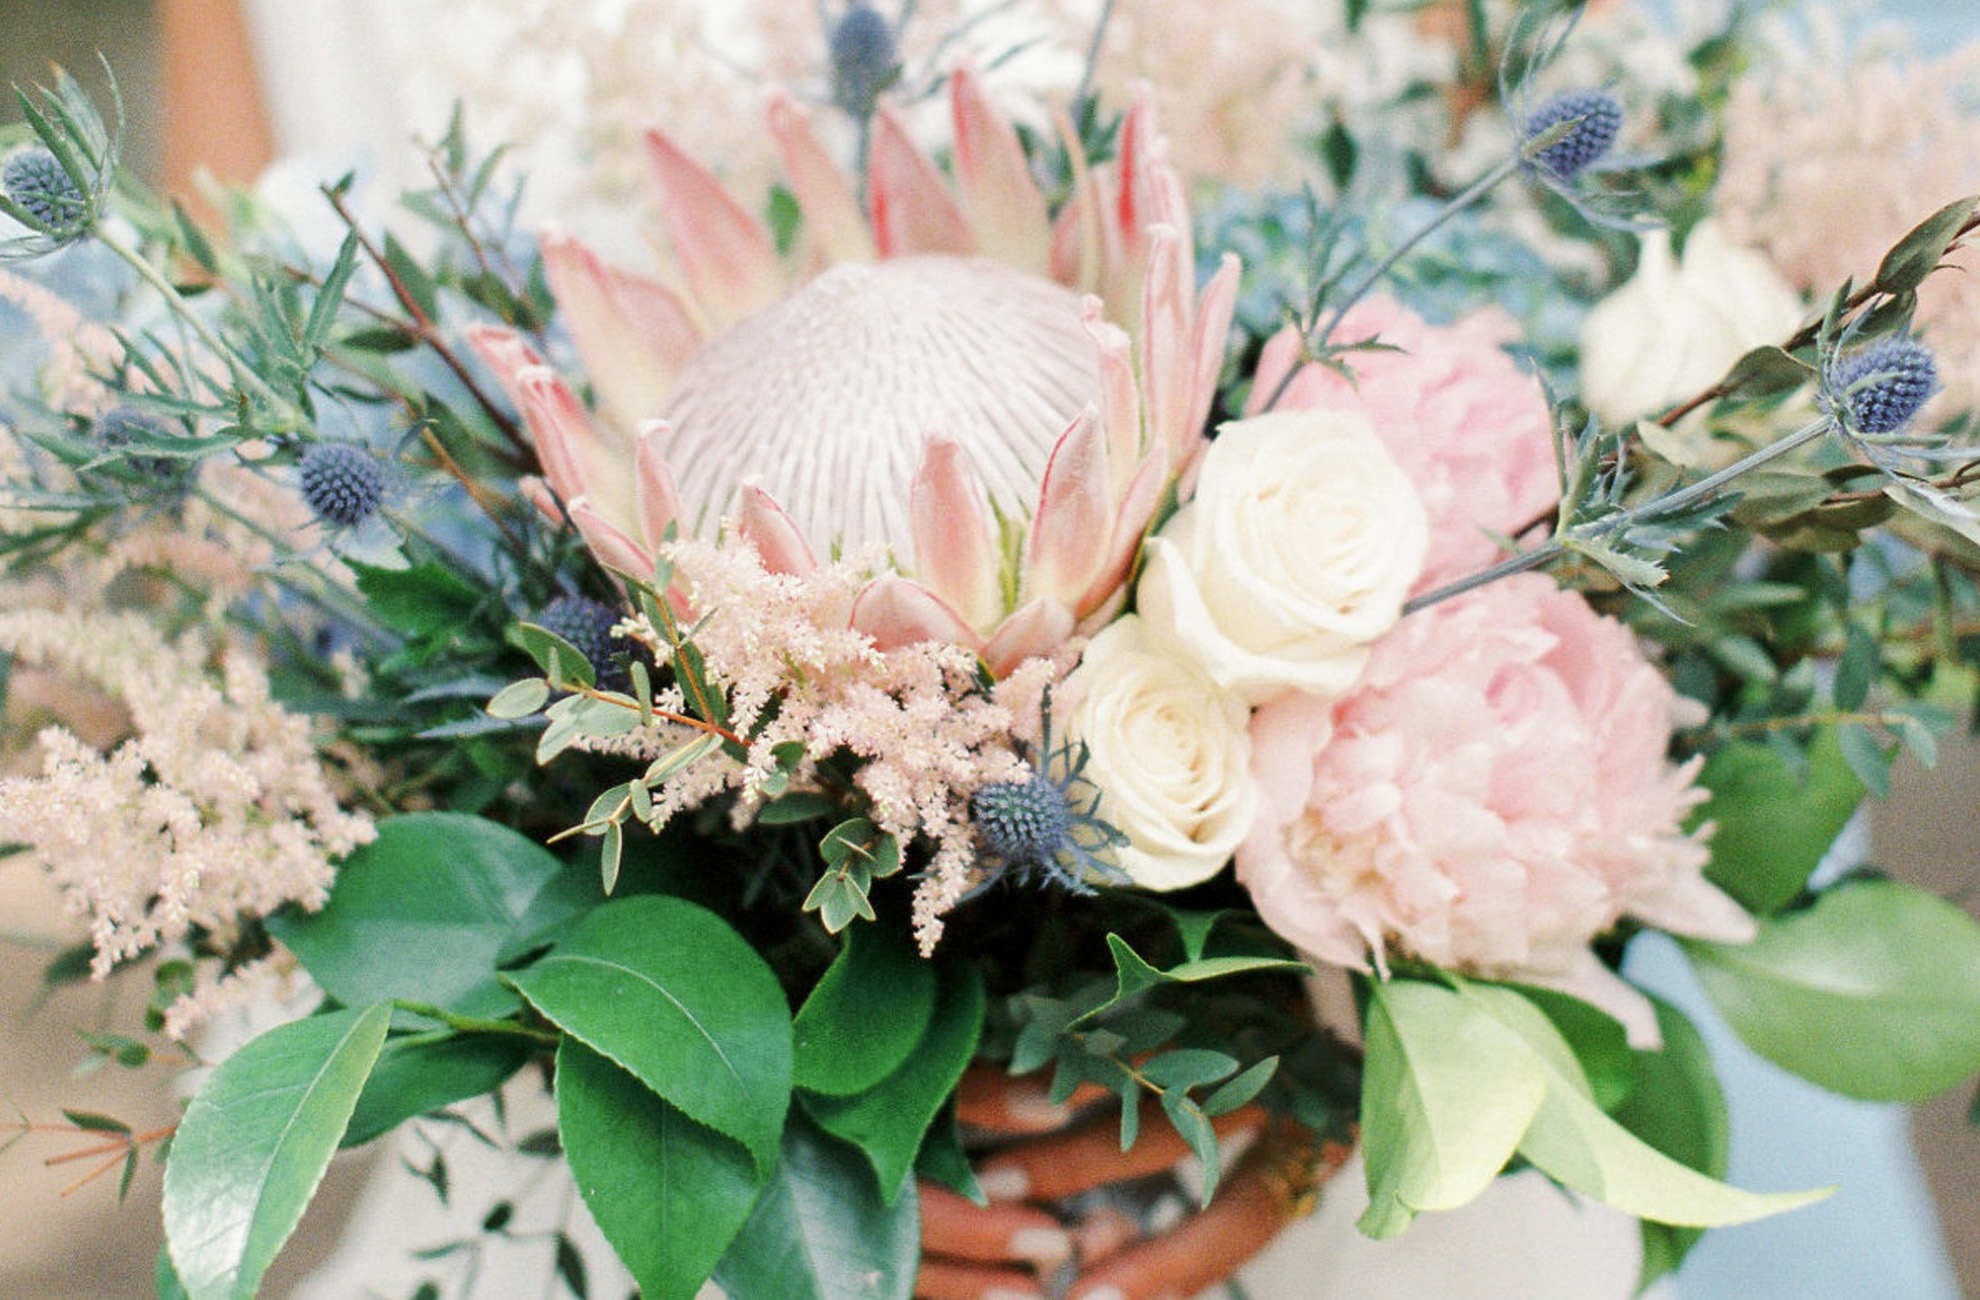 Exotic florals add a wow factor to a summer wedding bouquet at Combermere Abbey